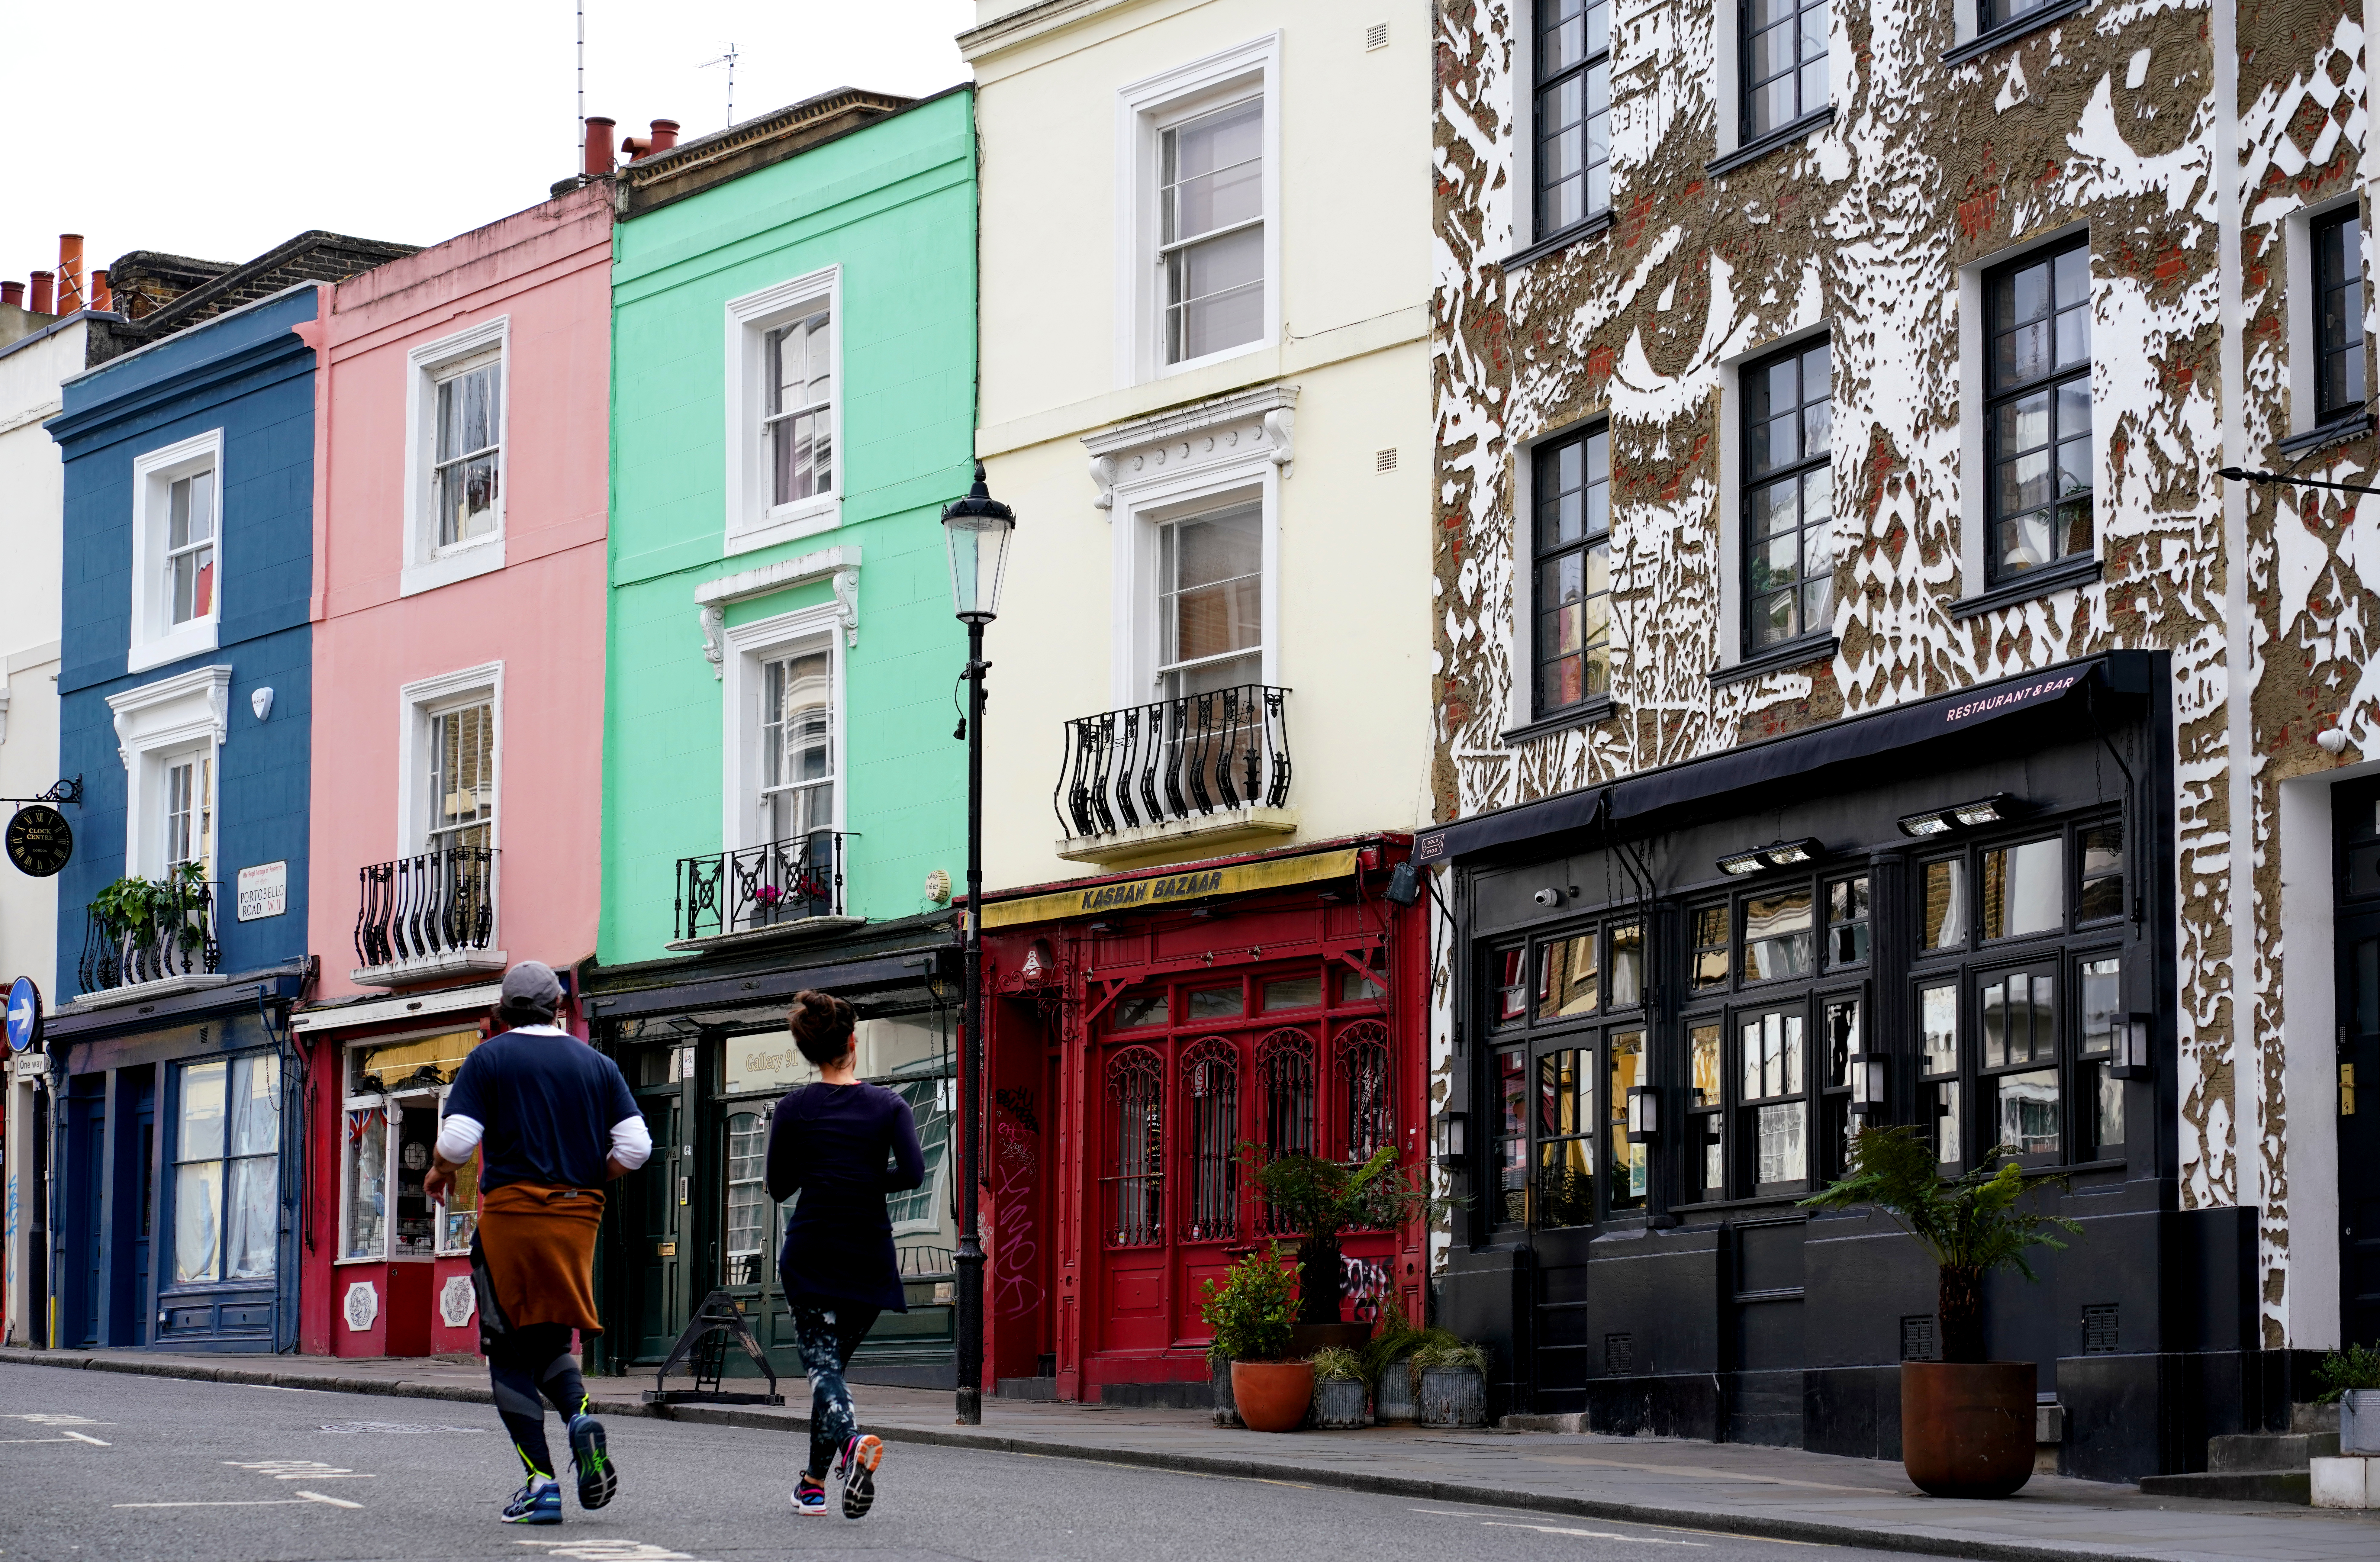 Members of the public jog down Portobello Road in Notting Hill, London as the UK continues in lockdown to help curb the spread of the coronavirus.